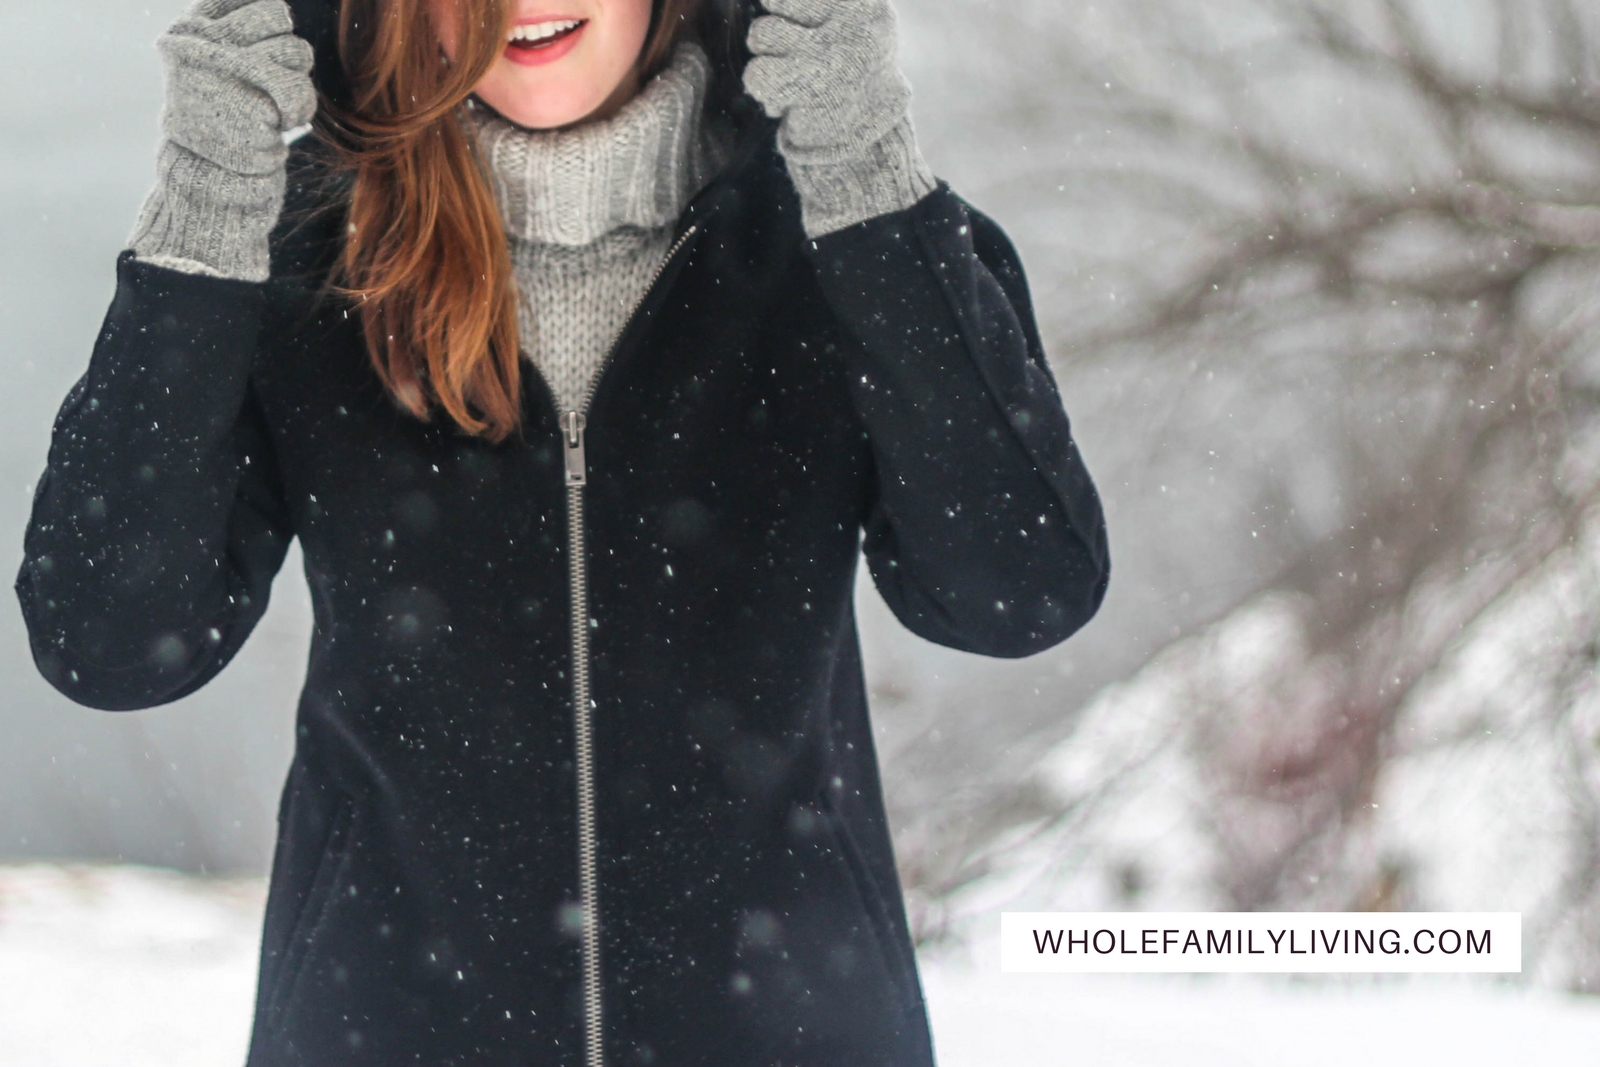 7 Ways to Keep Stress Low During the Holidays | Whole Family Living